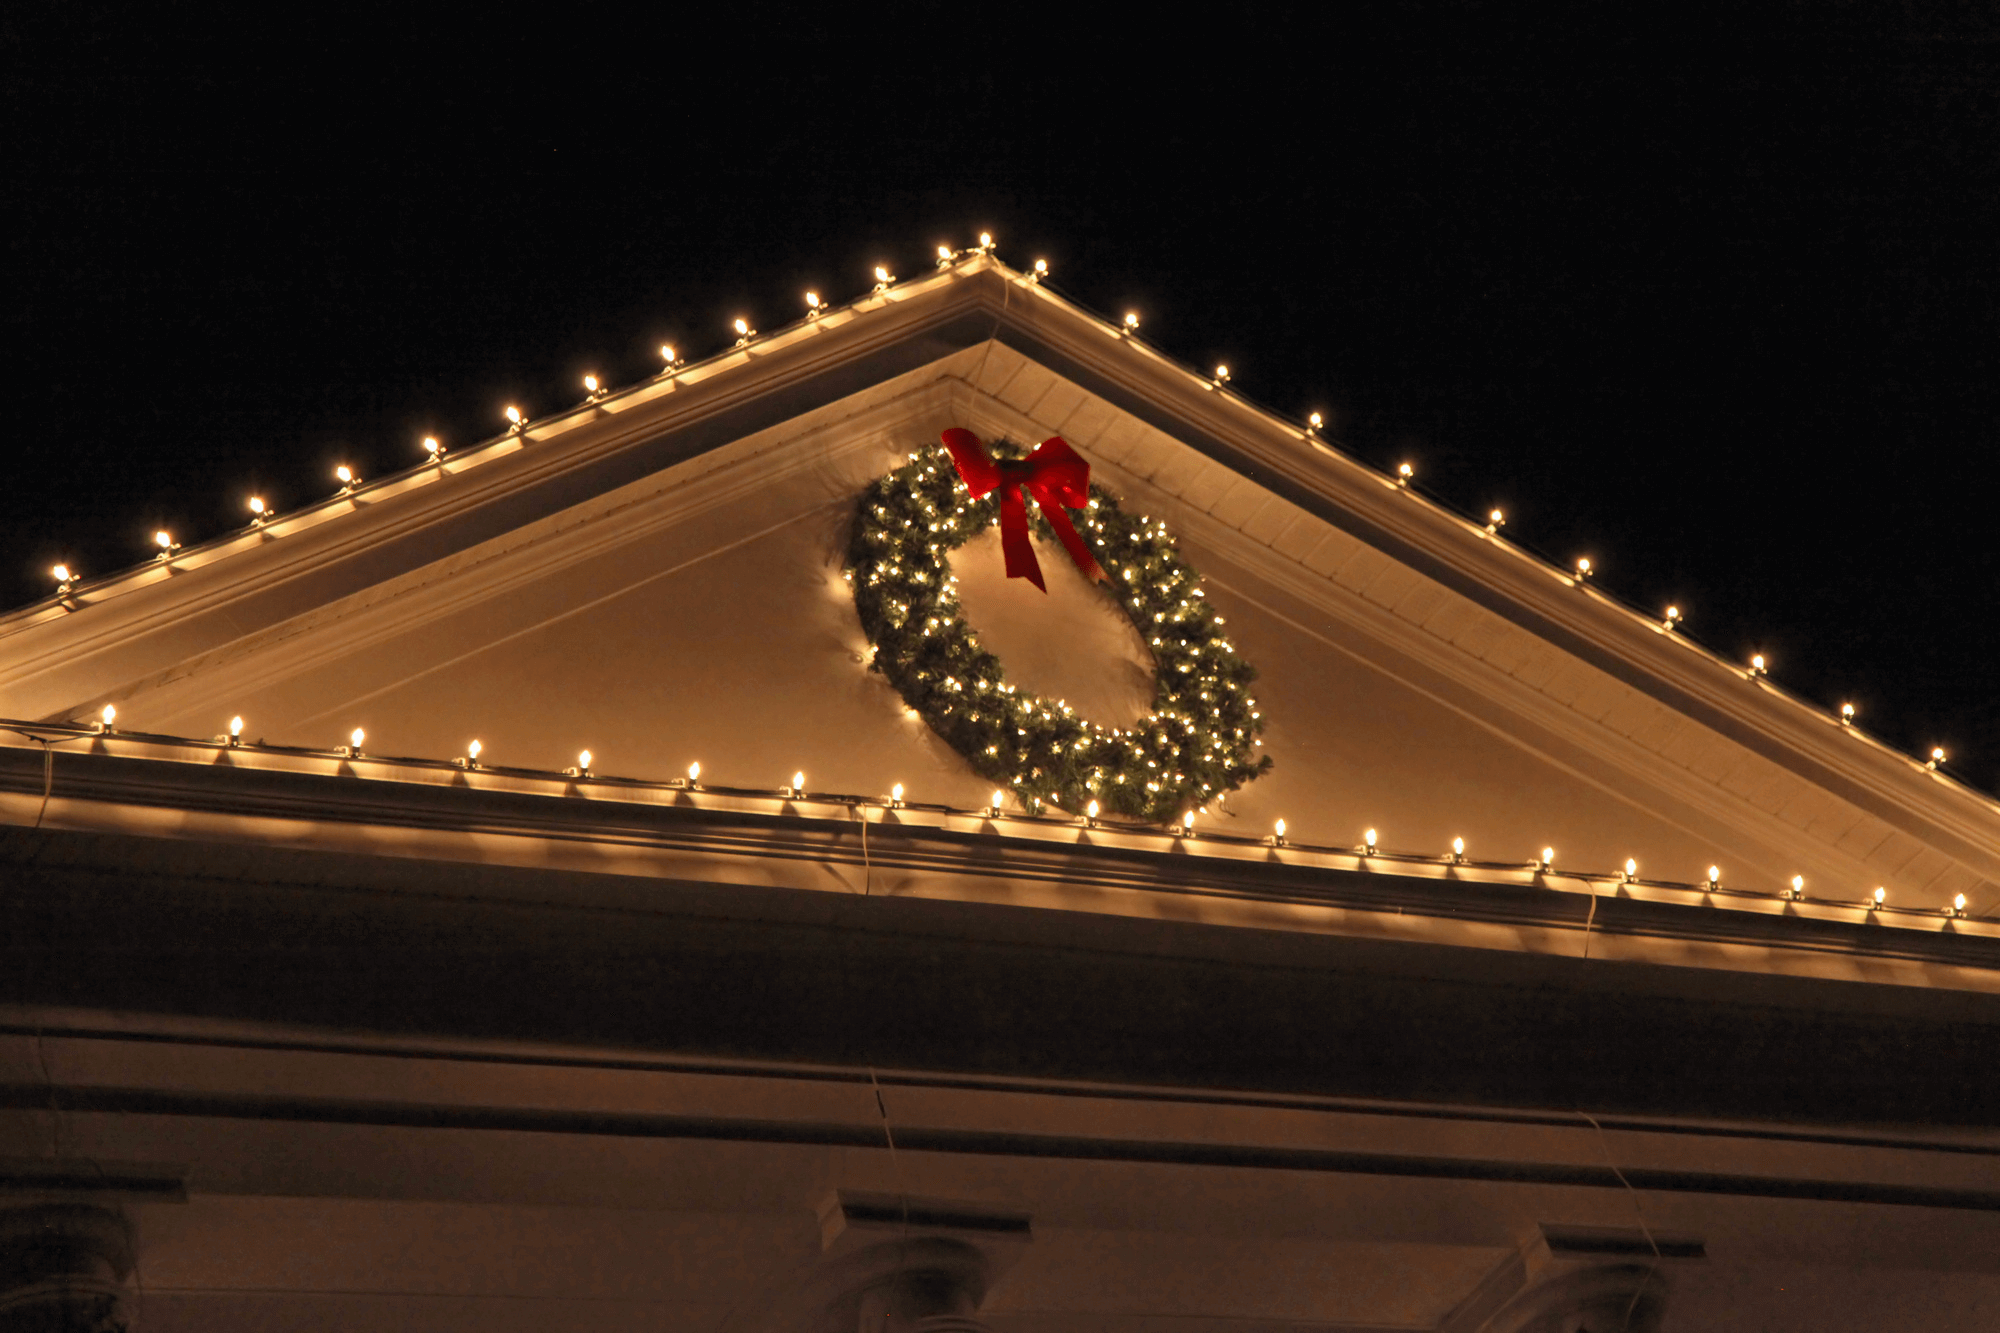 Damage-Free Decor: How to Decorate for the Holidays Without Damaging Your Roof